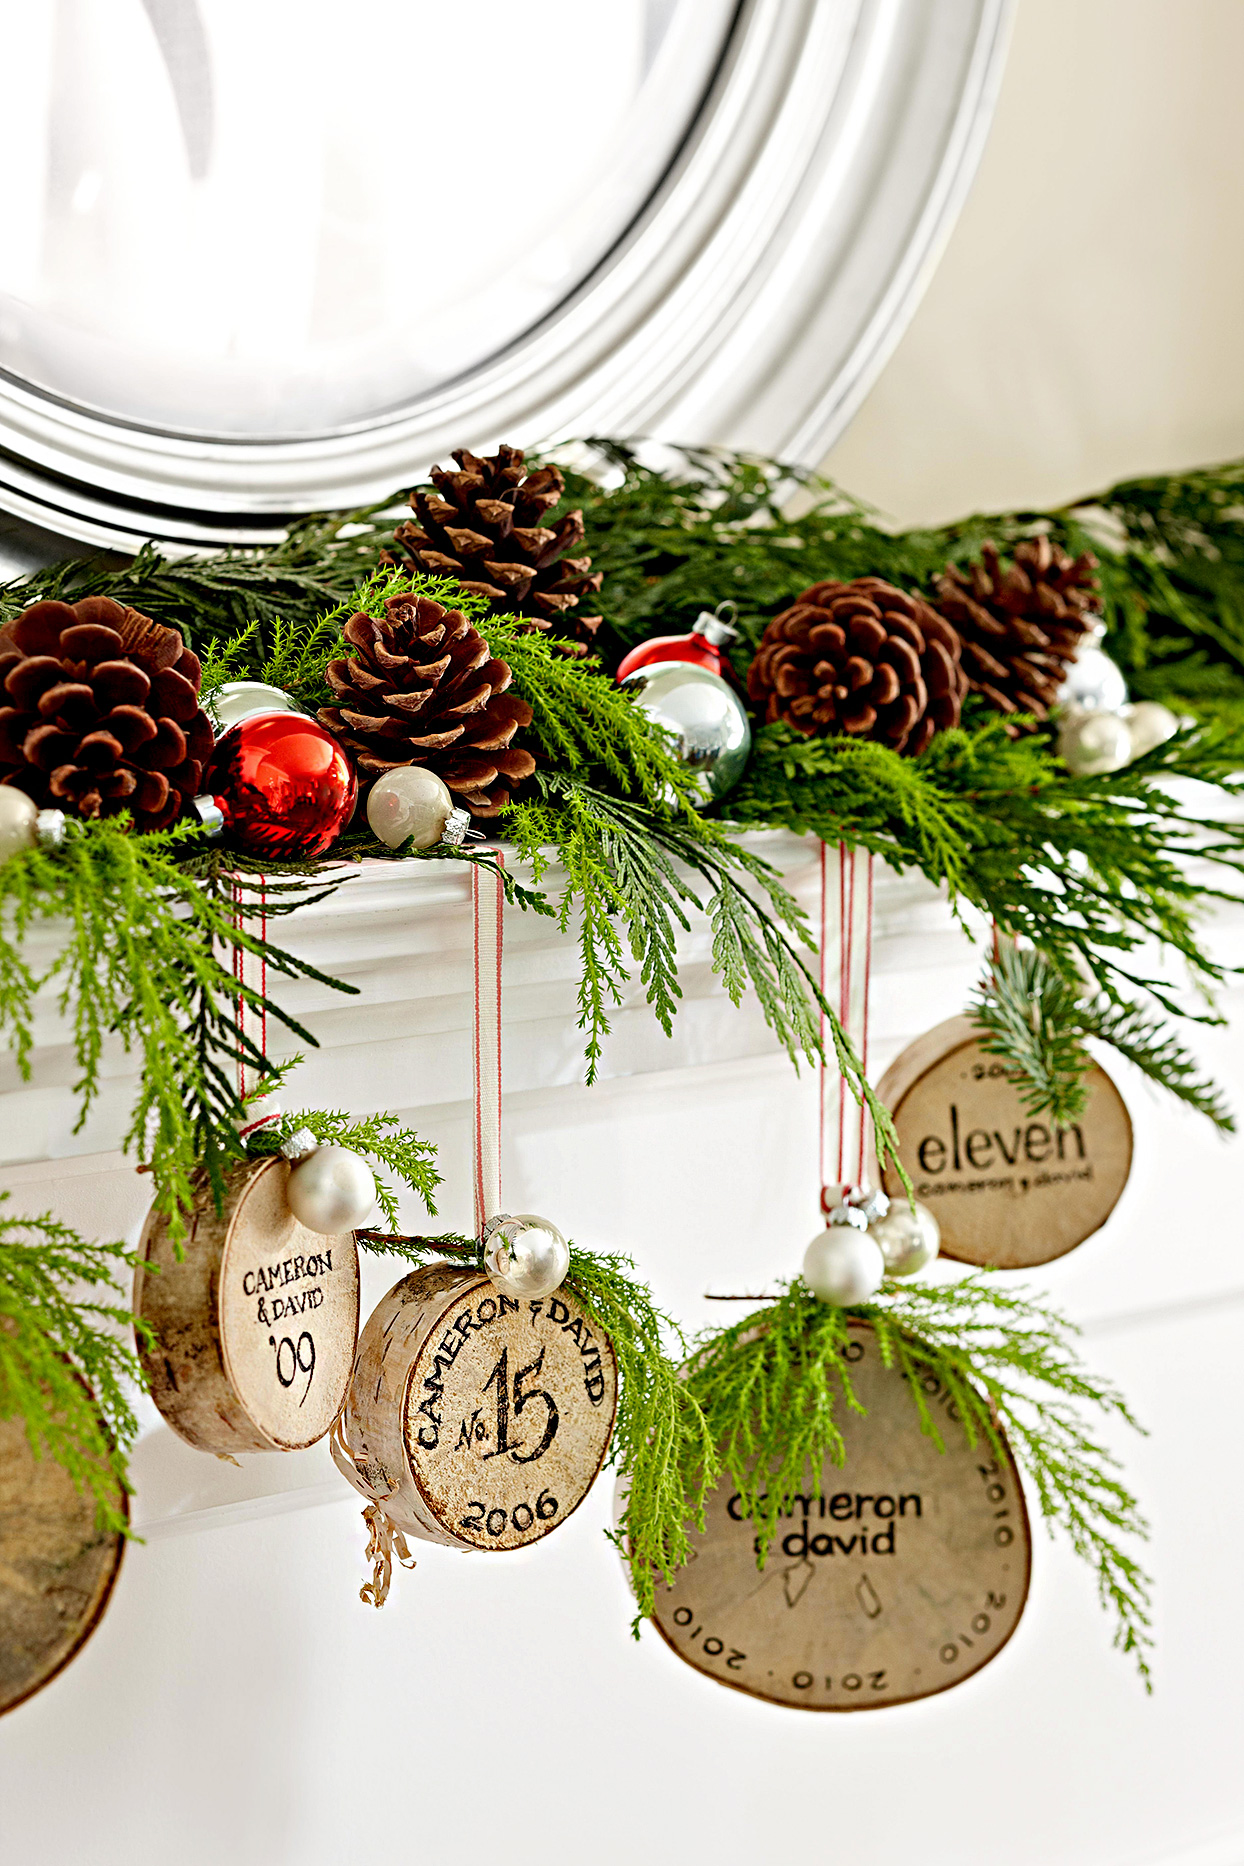 Christmas decorations with pinecones and ornaments